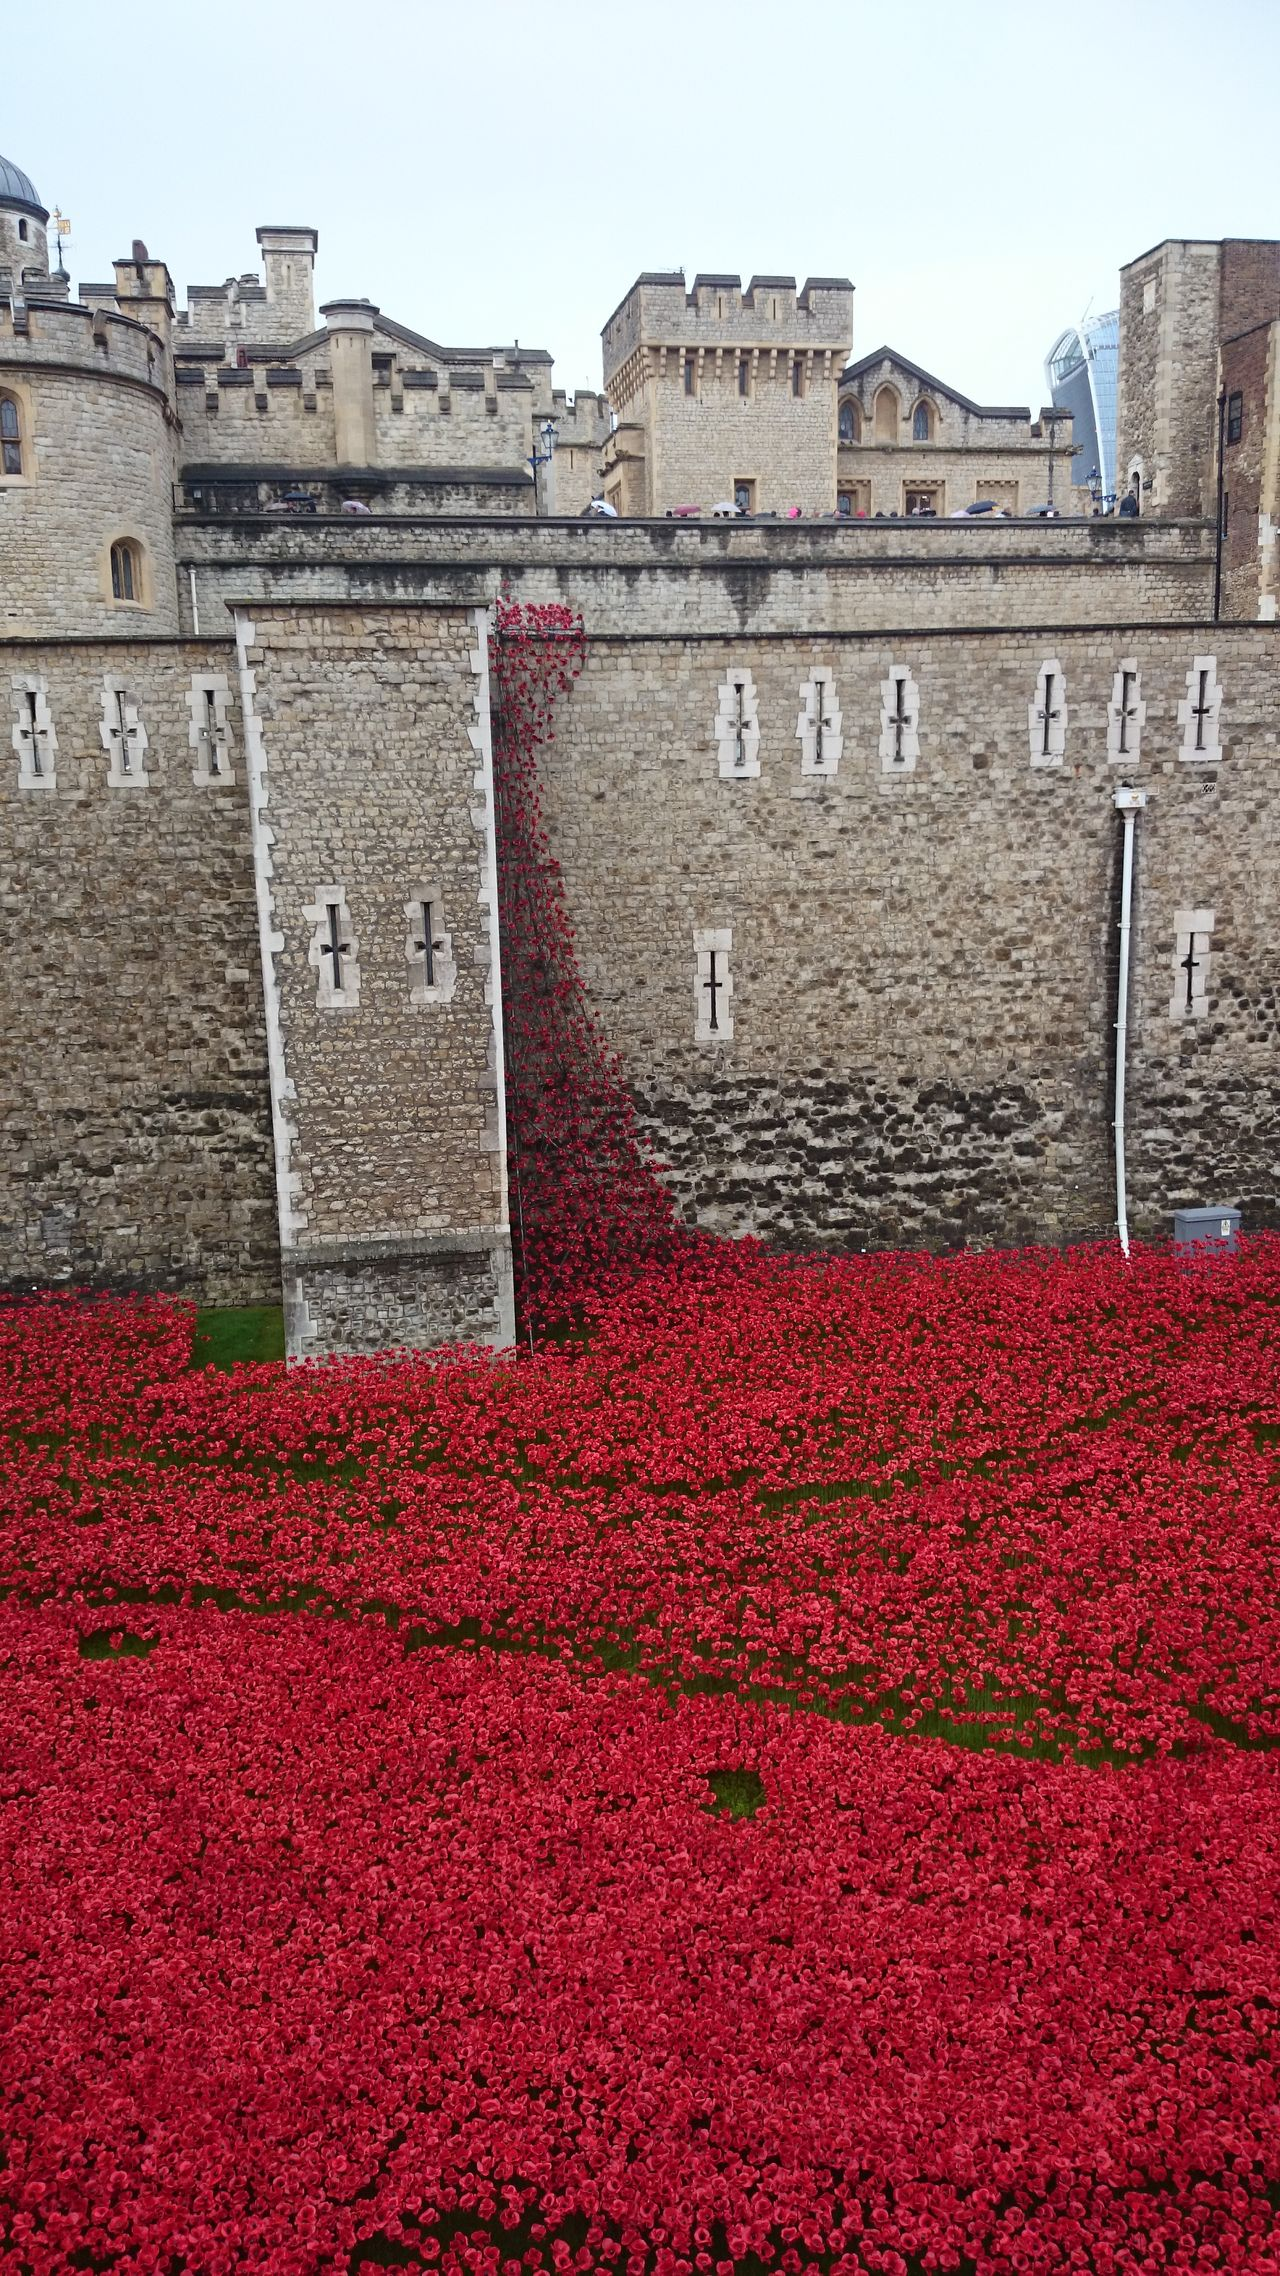 Poppies  Building Exterior No People Architecture War Memorial Sea Of Red WW1 Centenary Ww1 Memorial Lost Souls  We Shall Never Forget Lest We Forget Fallen Heroes Outdoors No People Building Exterior Architecture City Sky Water Day Built Structure Horizontal Close-up